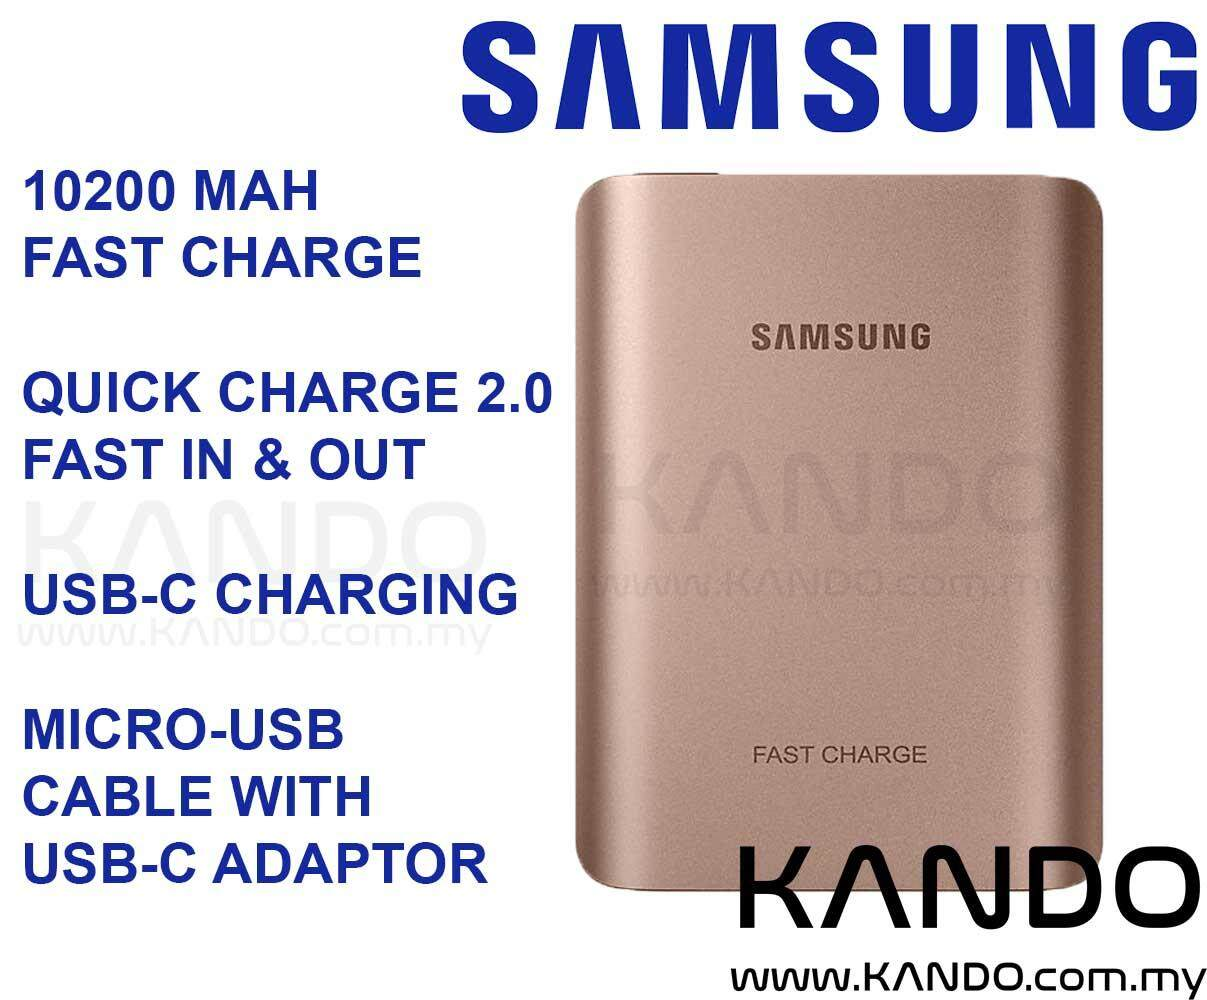 Samsung 10200mAh Fast Charge IN/OUT Battery Pack with Type C Cable 10200MAH Powerbank micro usb cable type c adaptor C